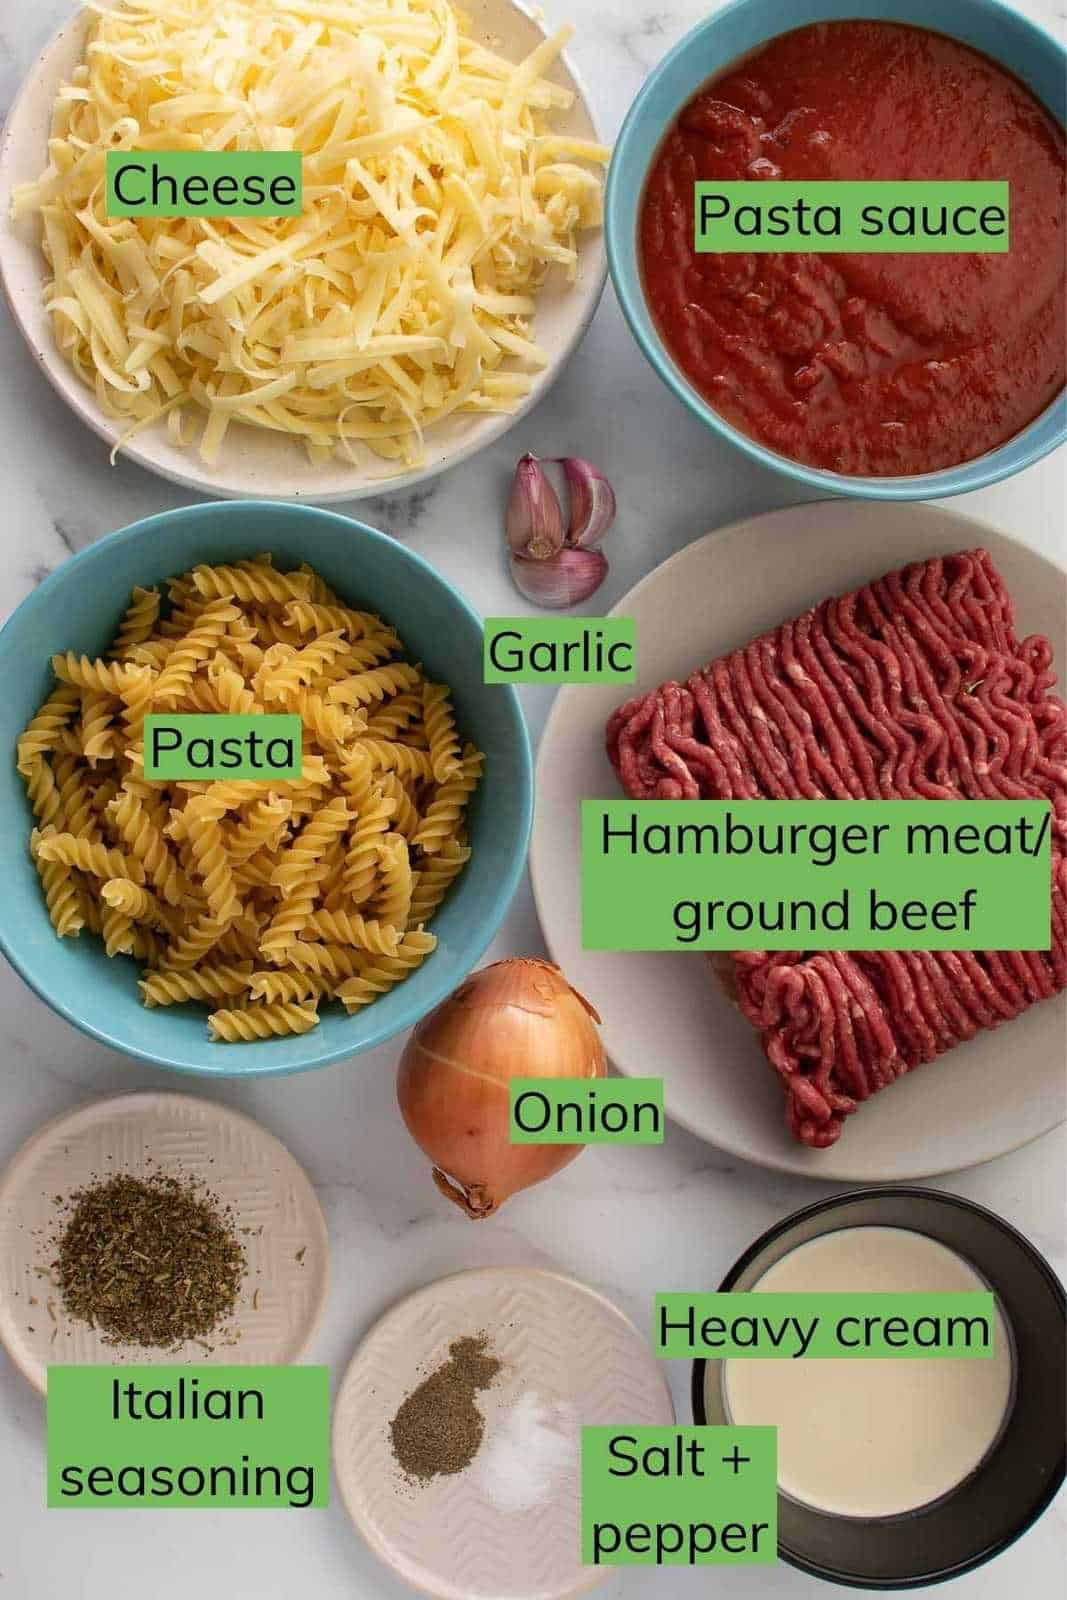 The ingredients required to make hamburger casserole laid out on a table.